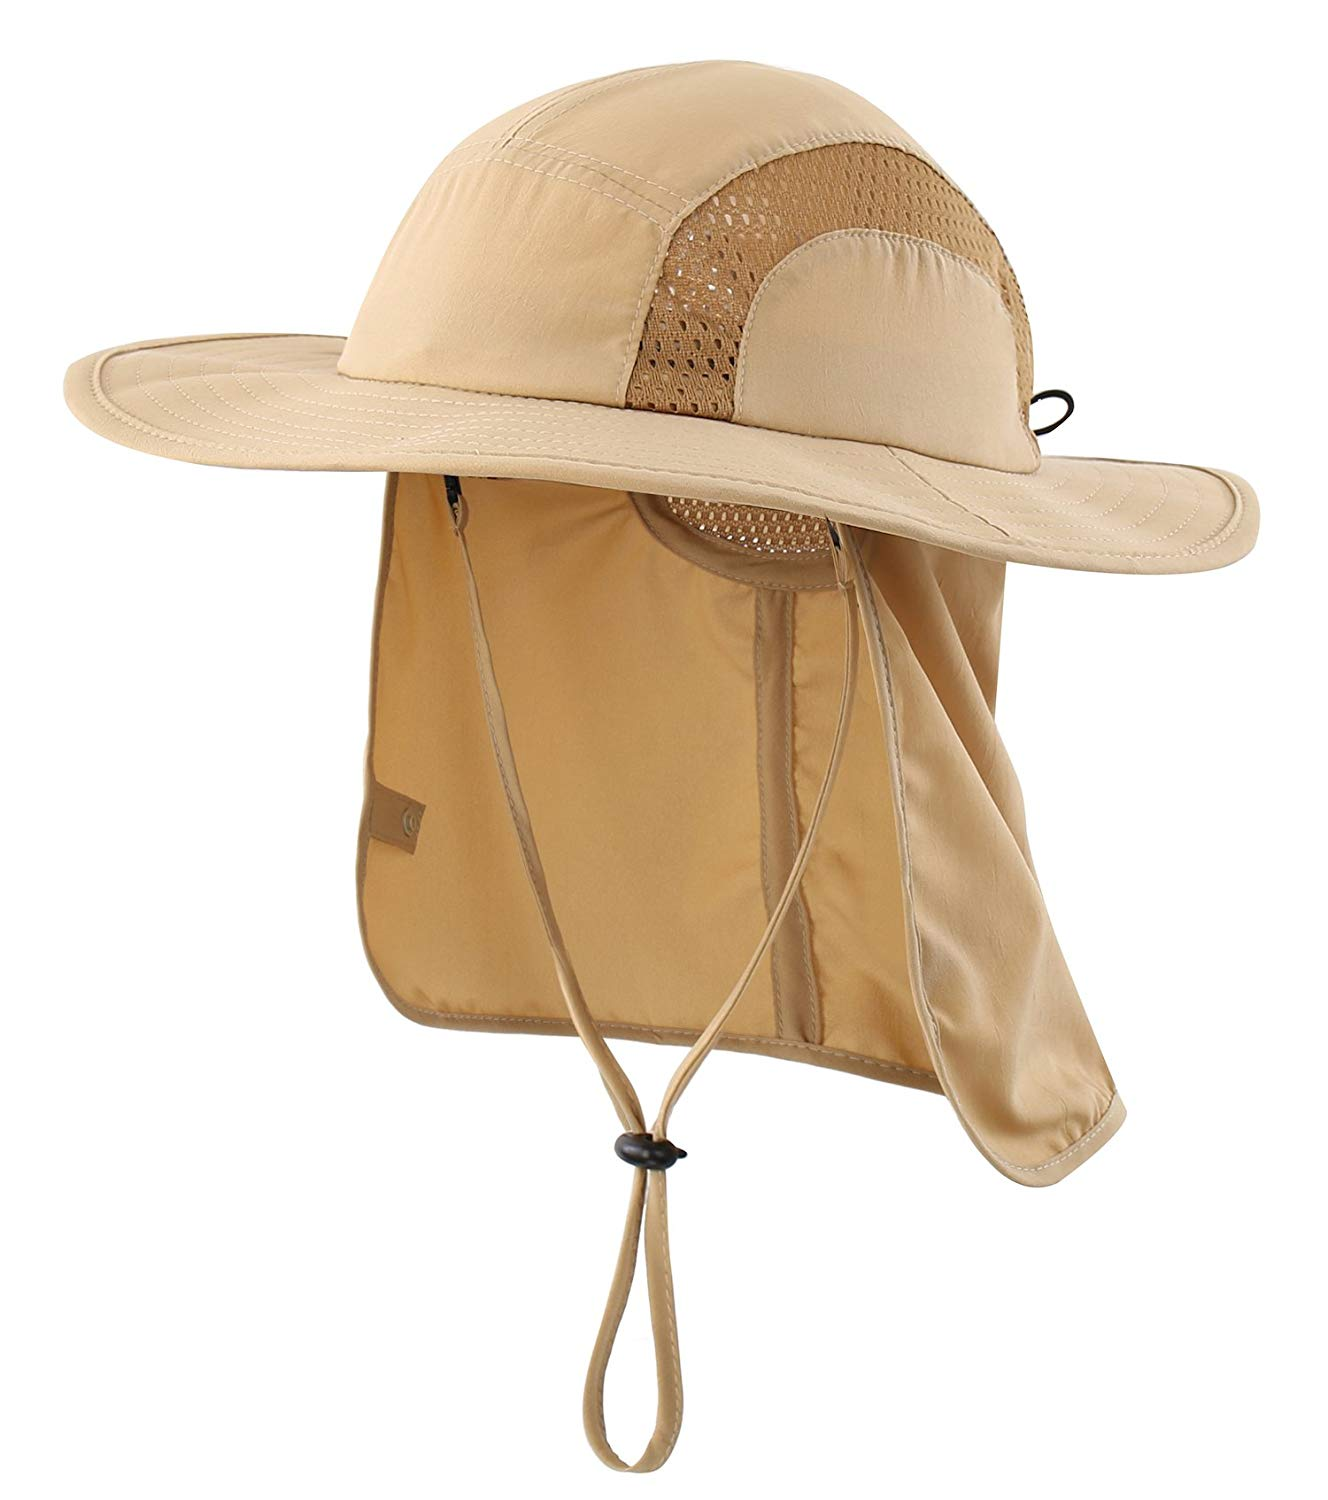 f633f3a8e6666 Get Quotations · Home Prefer Kids Safari Hat UPF 50+ Sun Protective Cap Boys  Bucket Hat With Flap